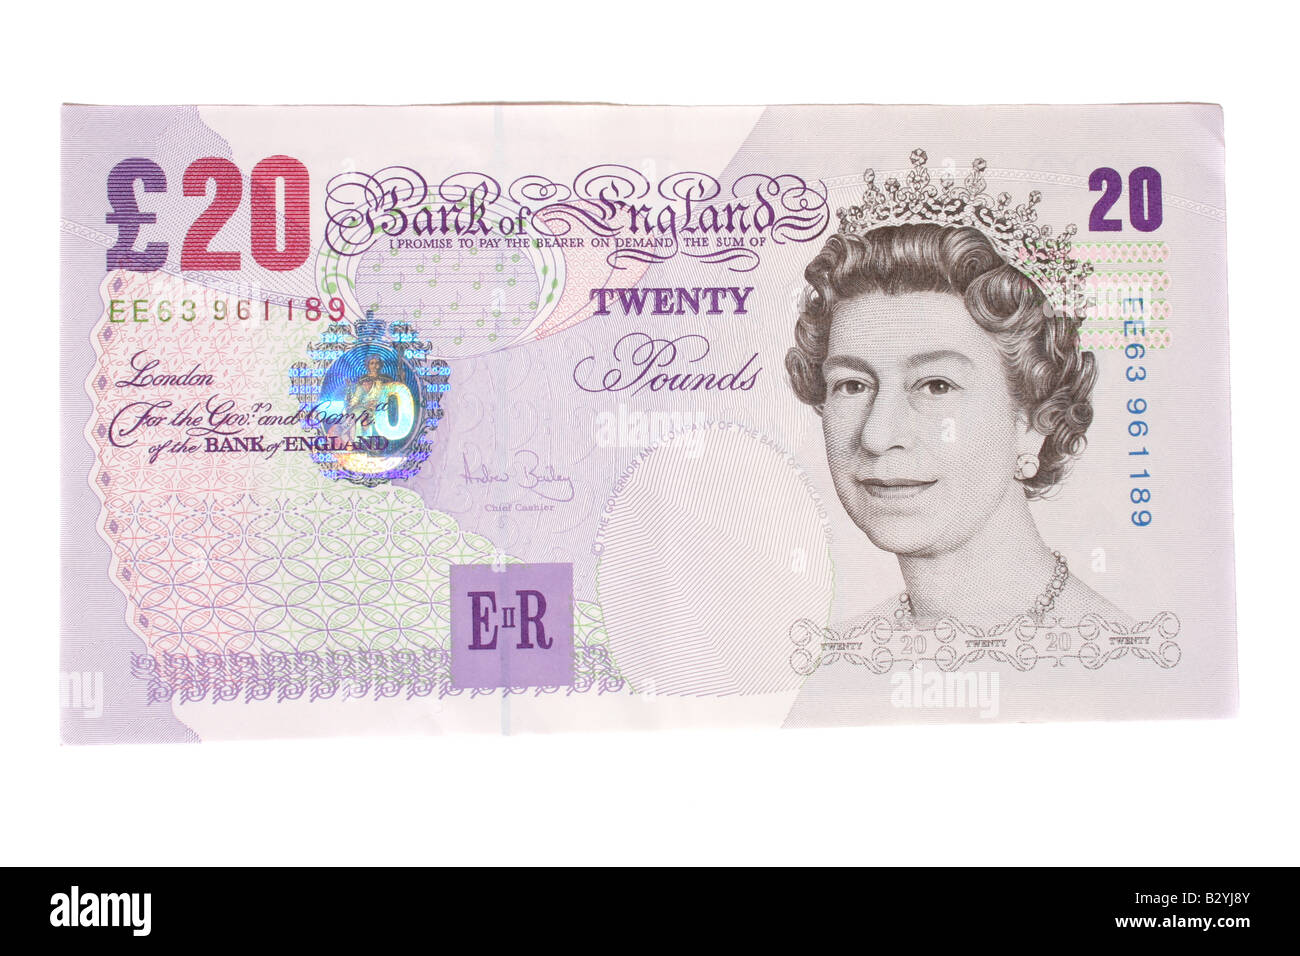 20 Pound Note Stock Photos Amp 20 Pound Note Stock Images